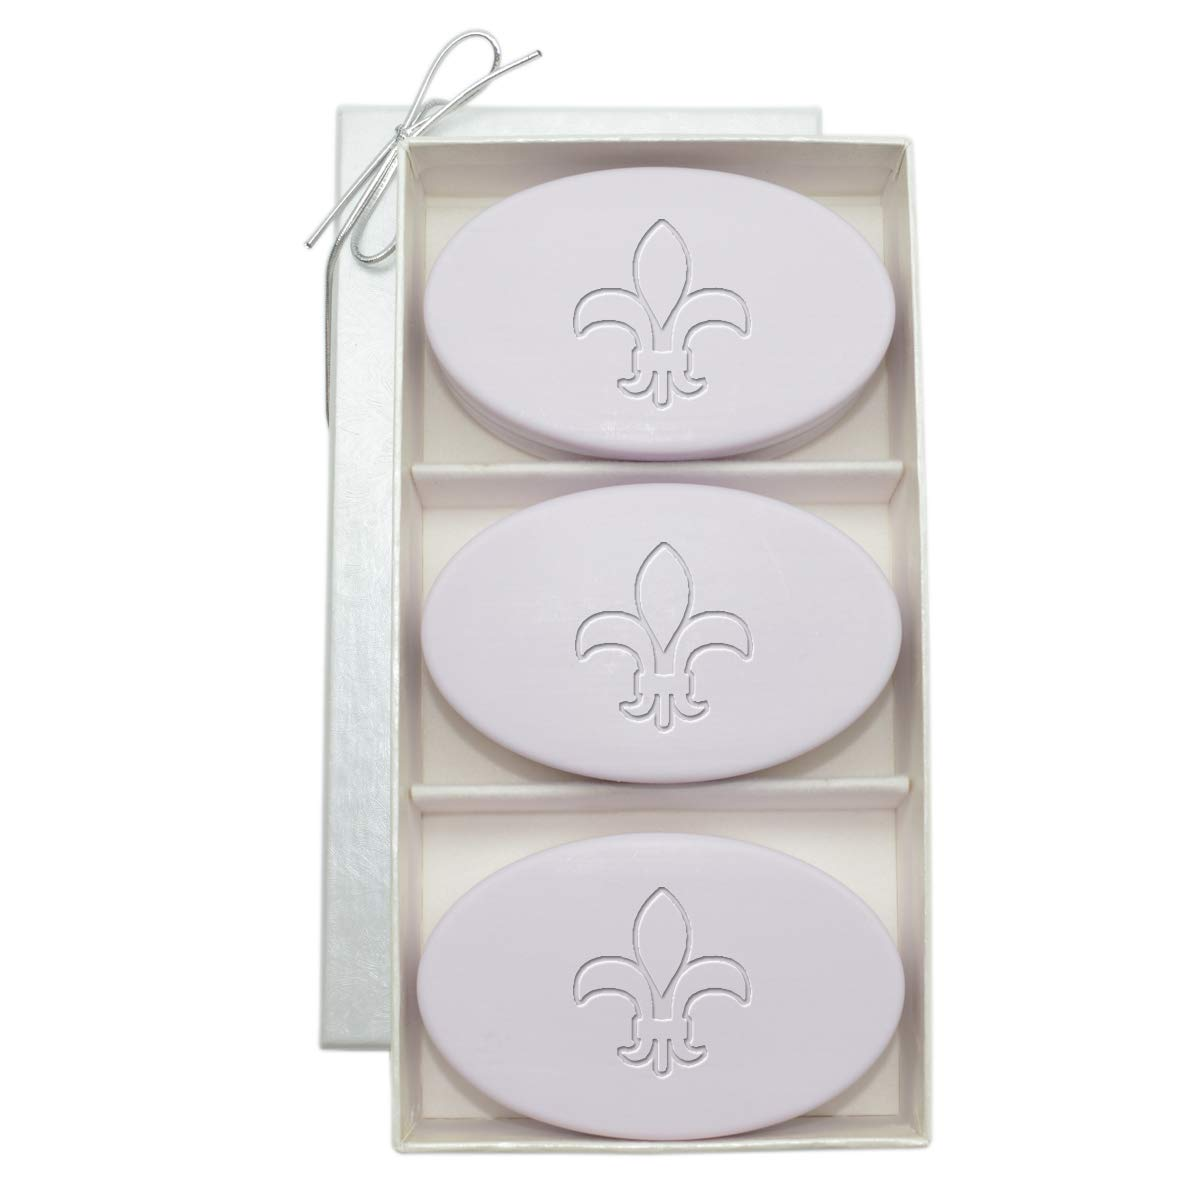 Carved Solutions Genuine Free Shipping Gift Set Signature for Spa Lavender sale Housew Soap